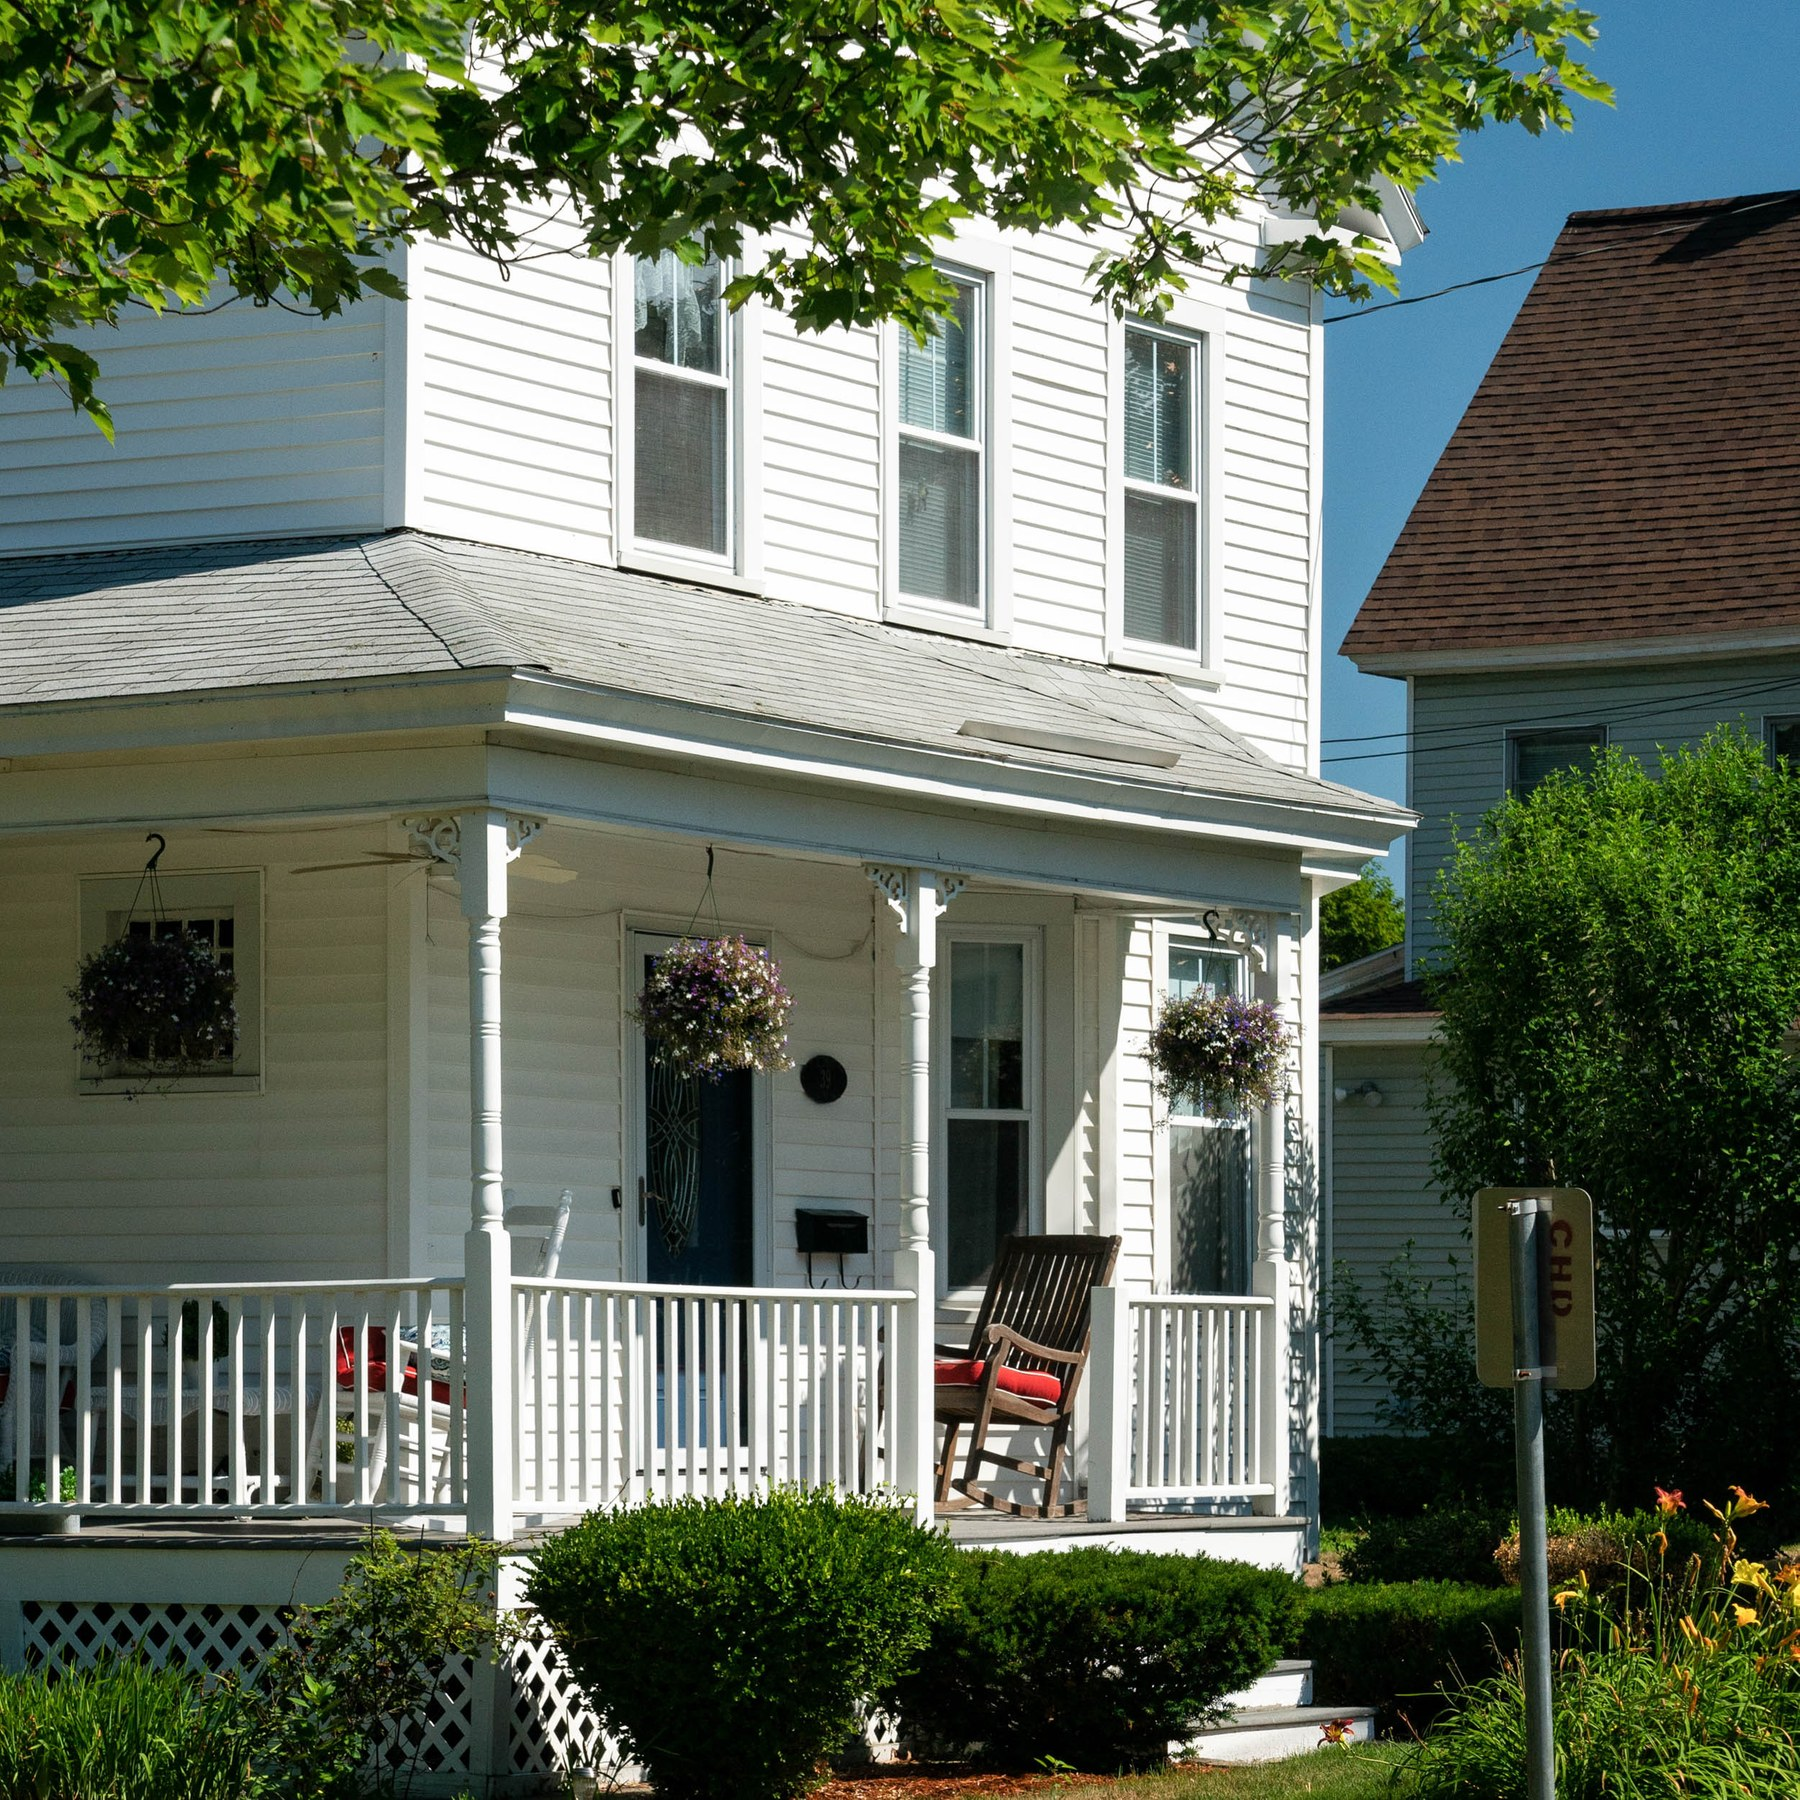 Local Com Homes For Rent: North Chelmsford, Chelmsford MA - Neighborhood Guide